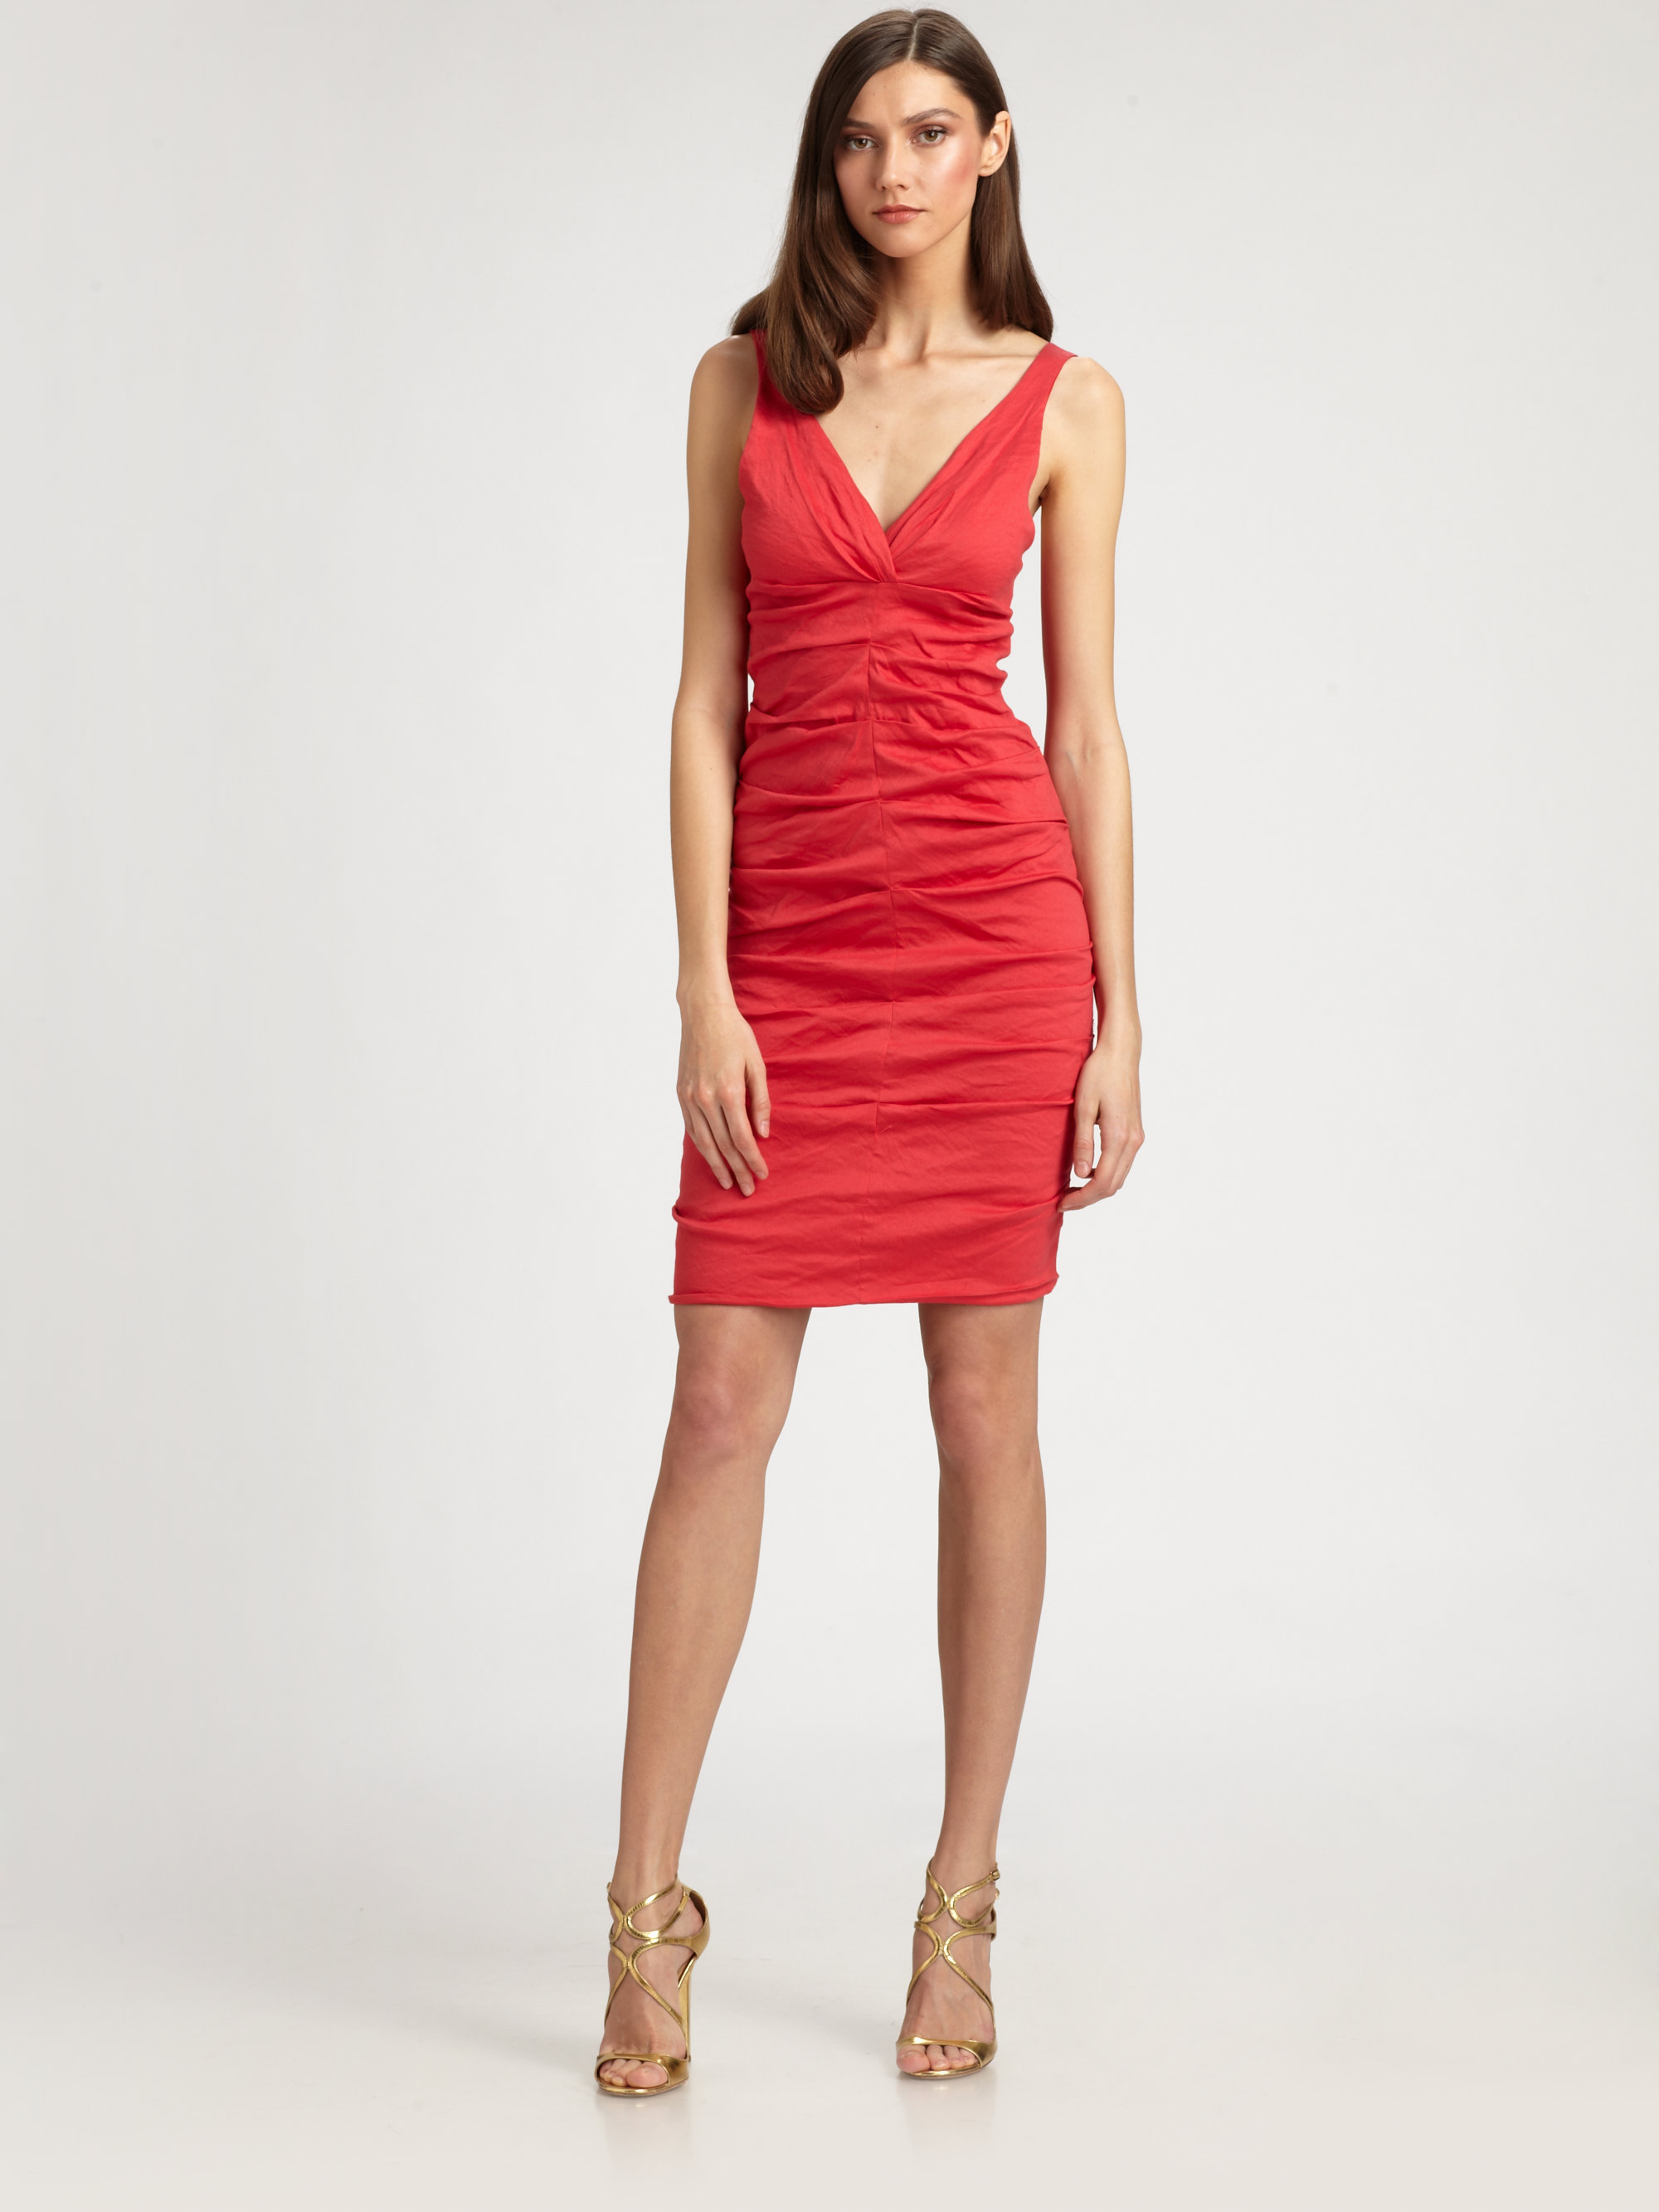 Nicole Miller Ruched Dress in Red watermelon  Lyst